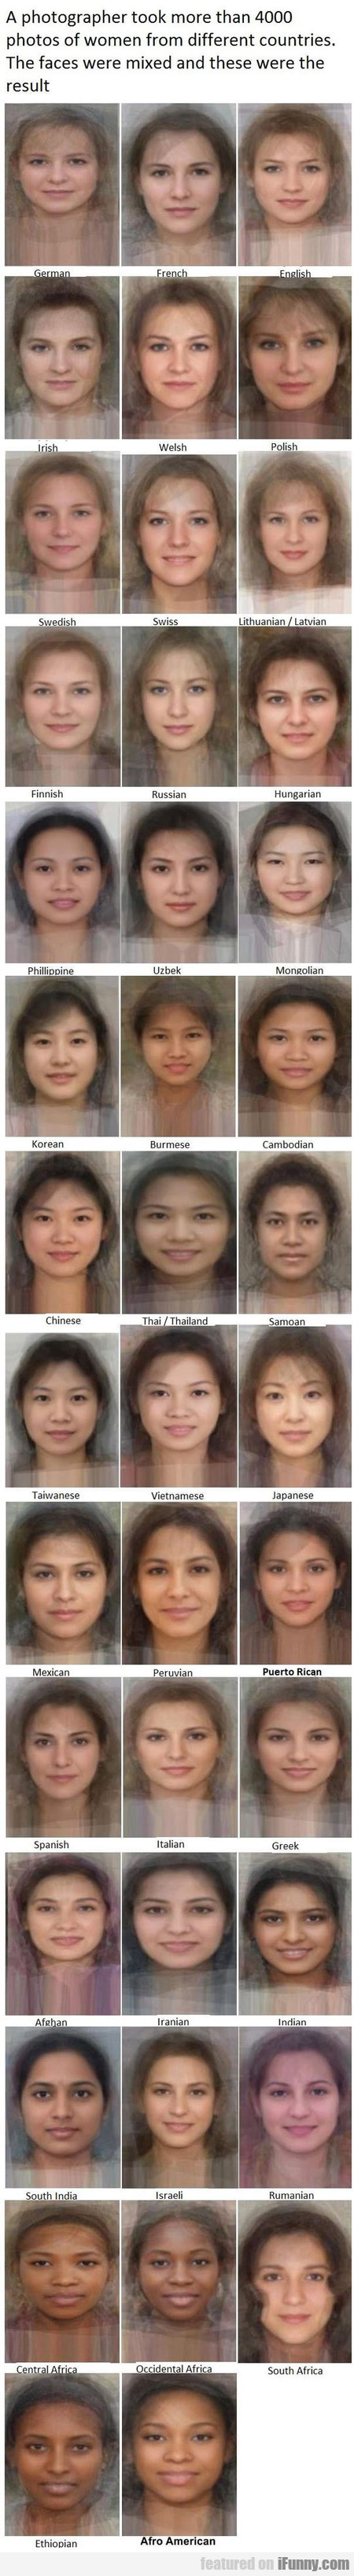 Average Young Woman From Each Country